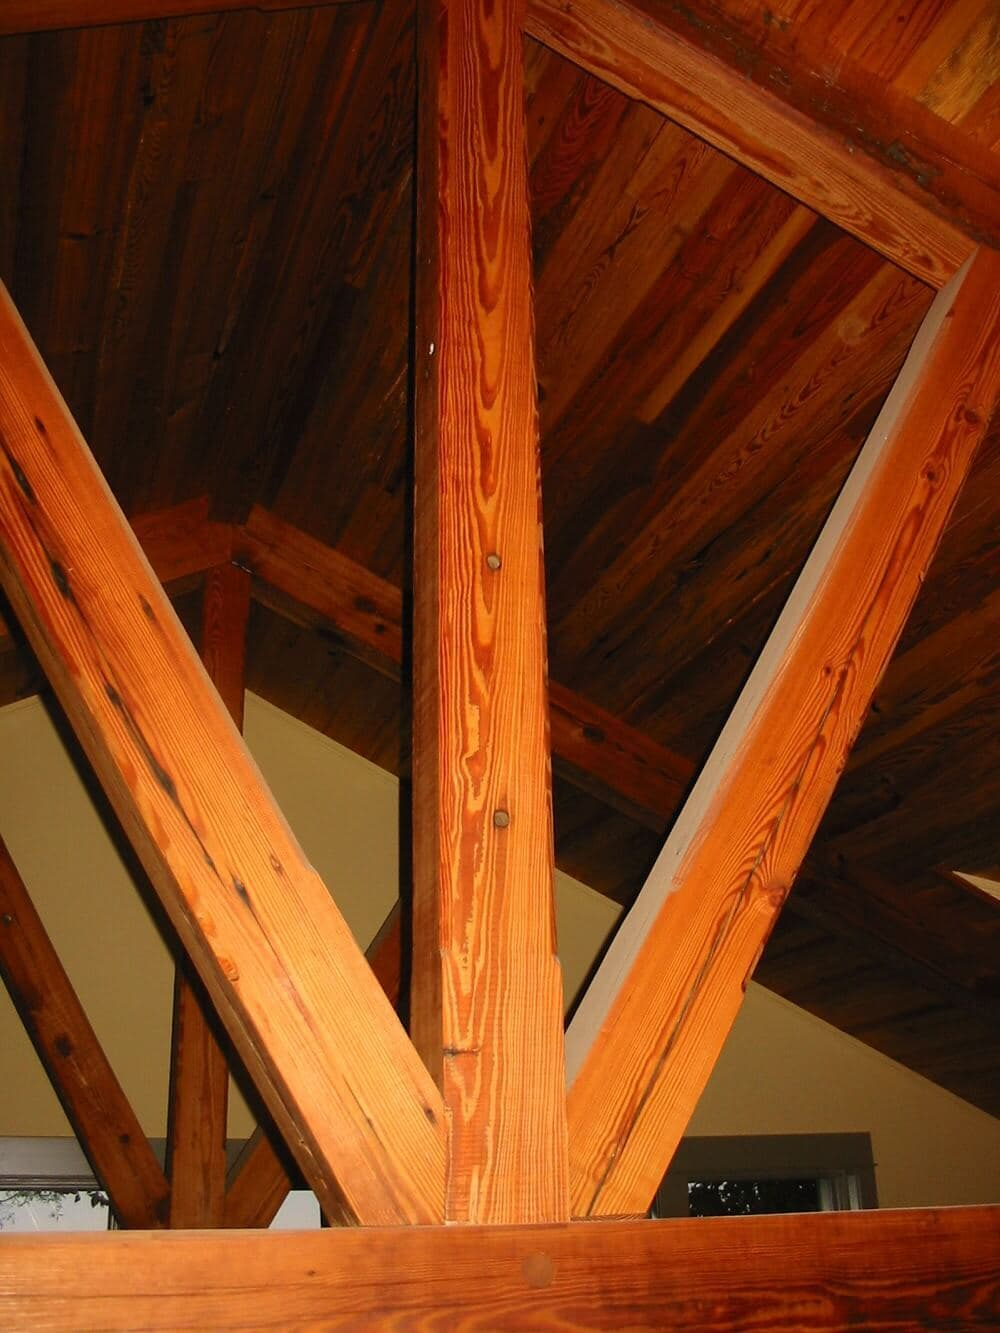 Antique heart pine timbers